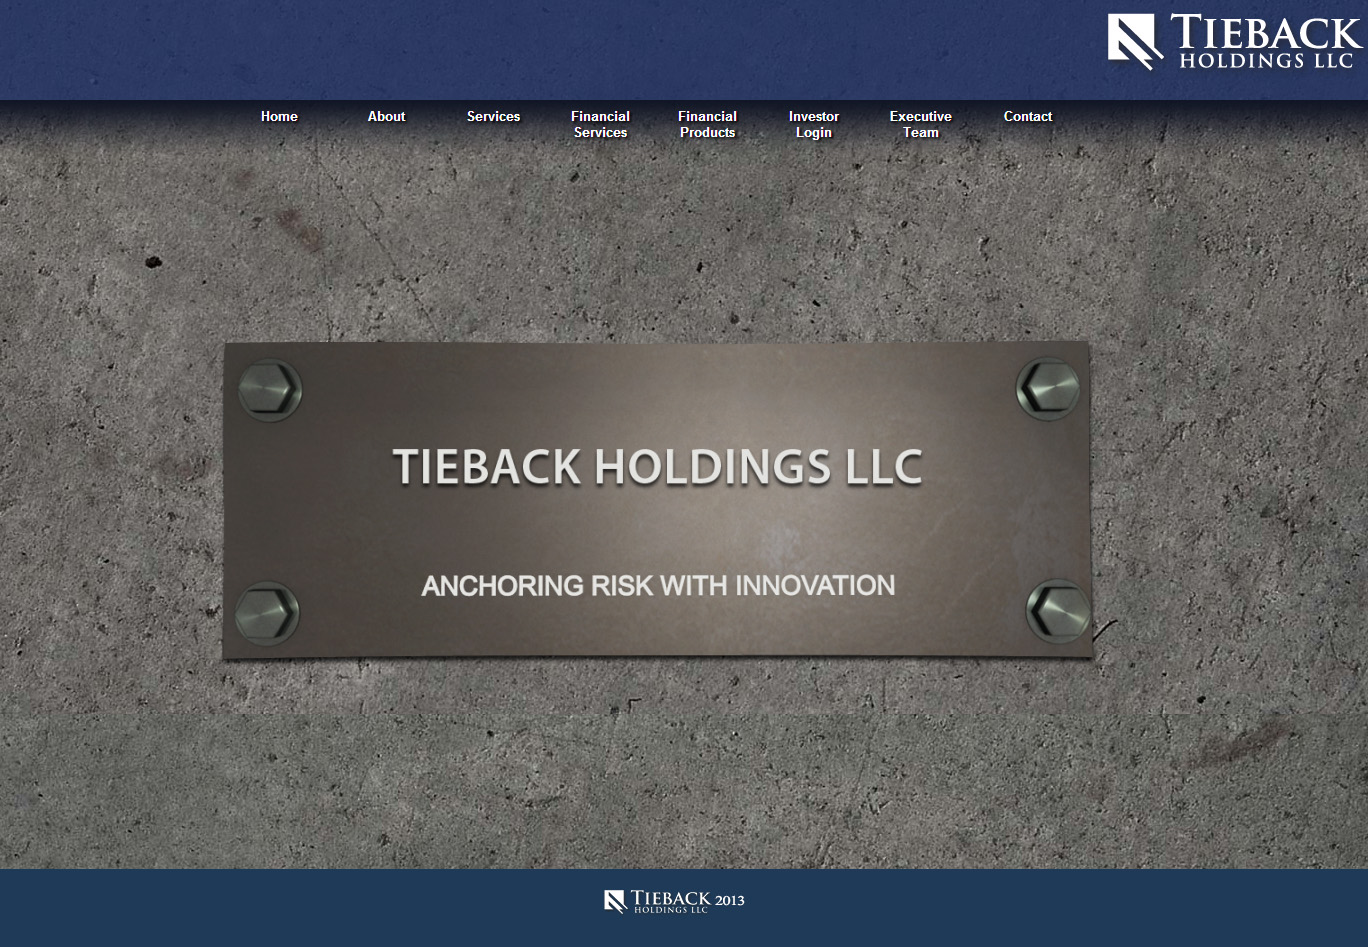 Tieback Holdings, LLC